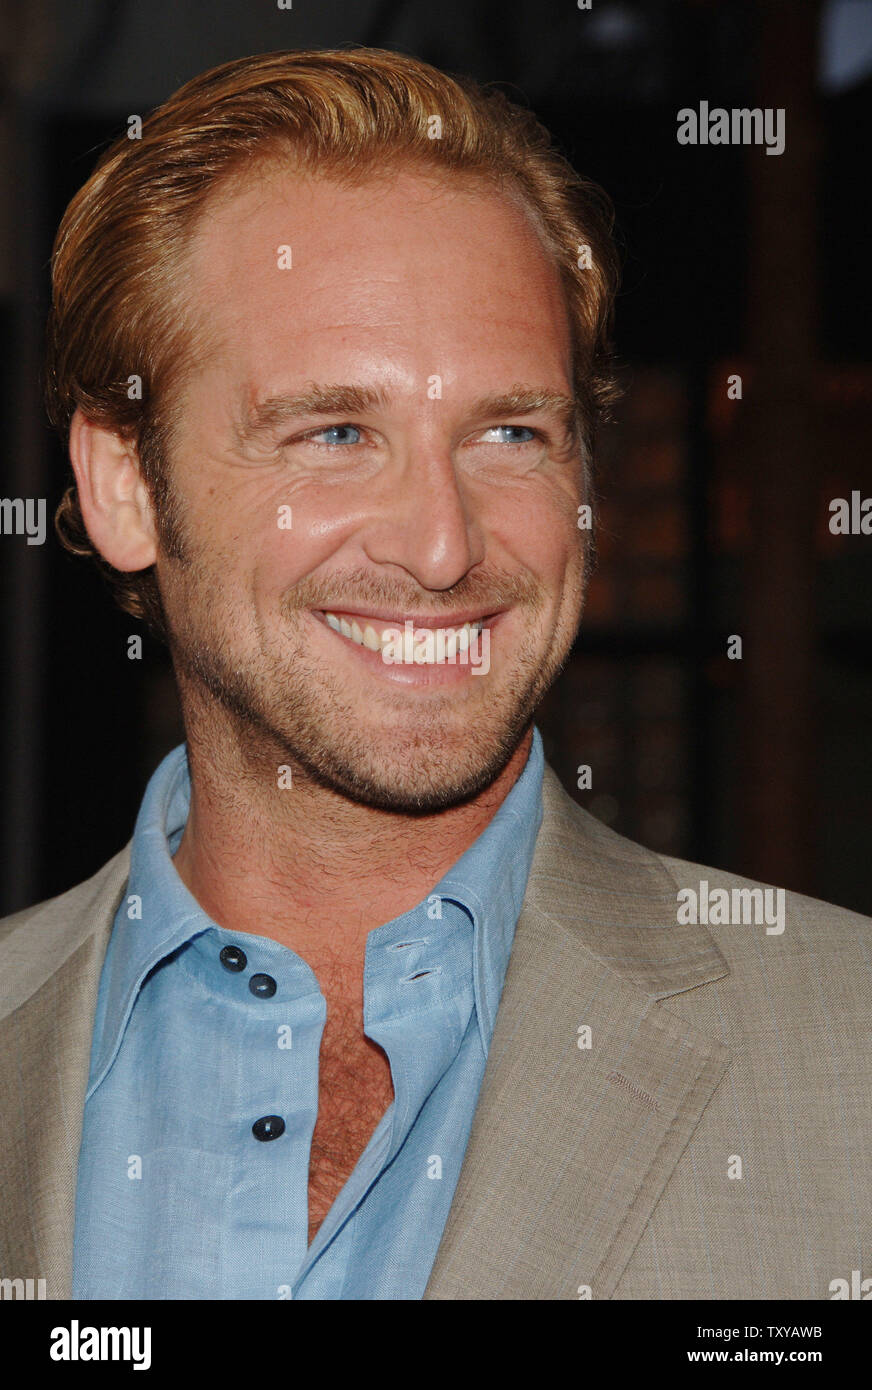 Josh Lucas A Cast Member In The Motion Picture Drama